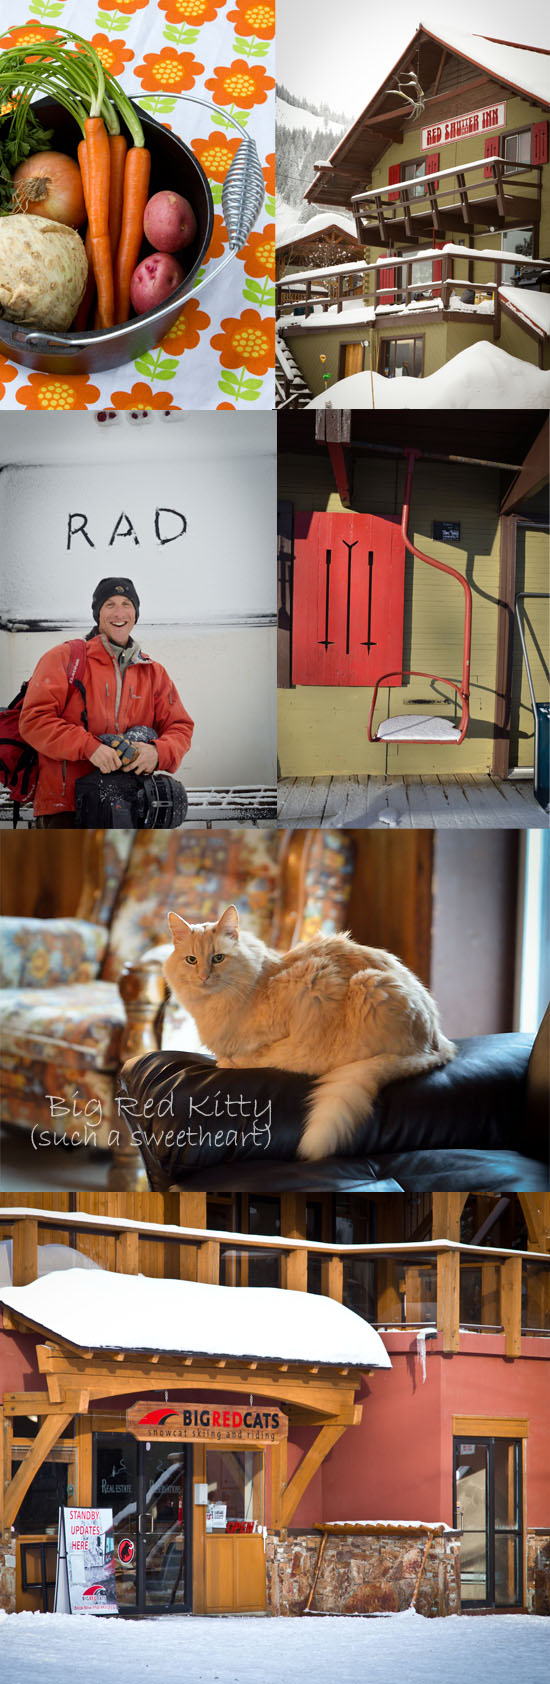 Big Red Cats and Big Red Kitty in Rossland, B.C.